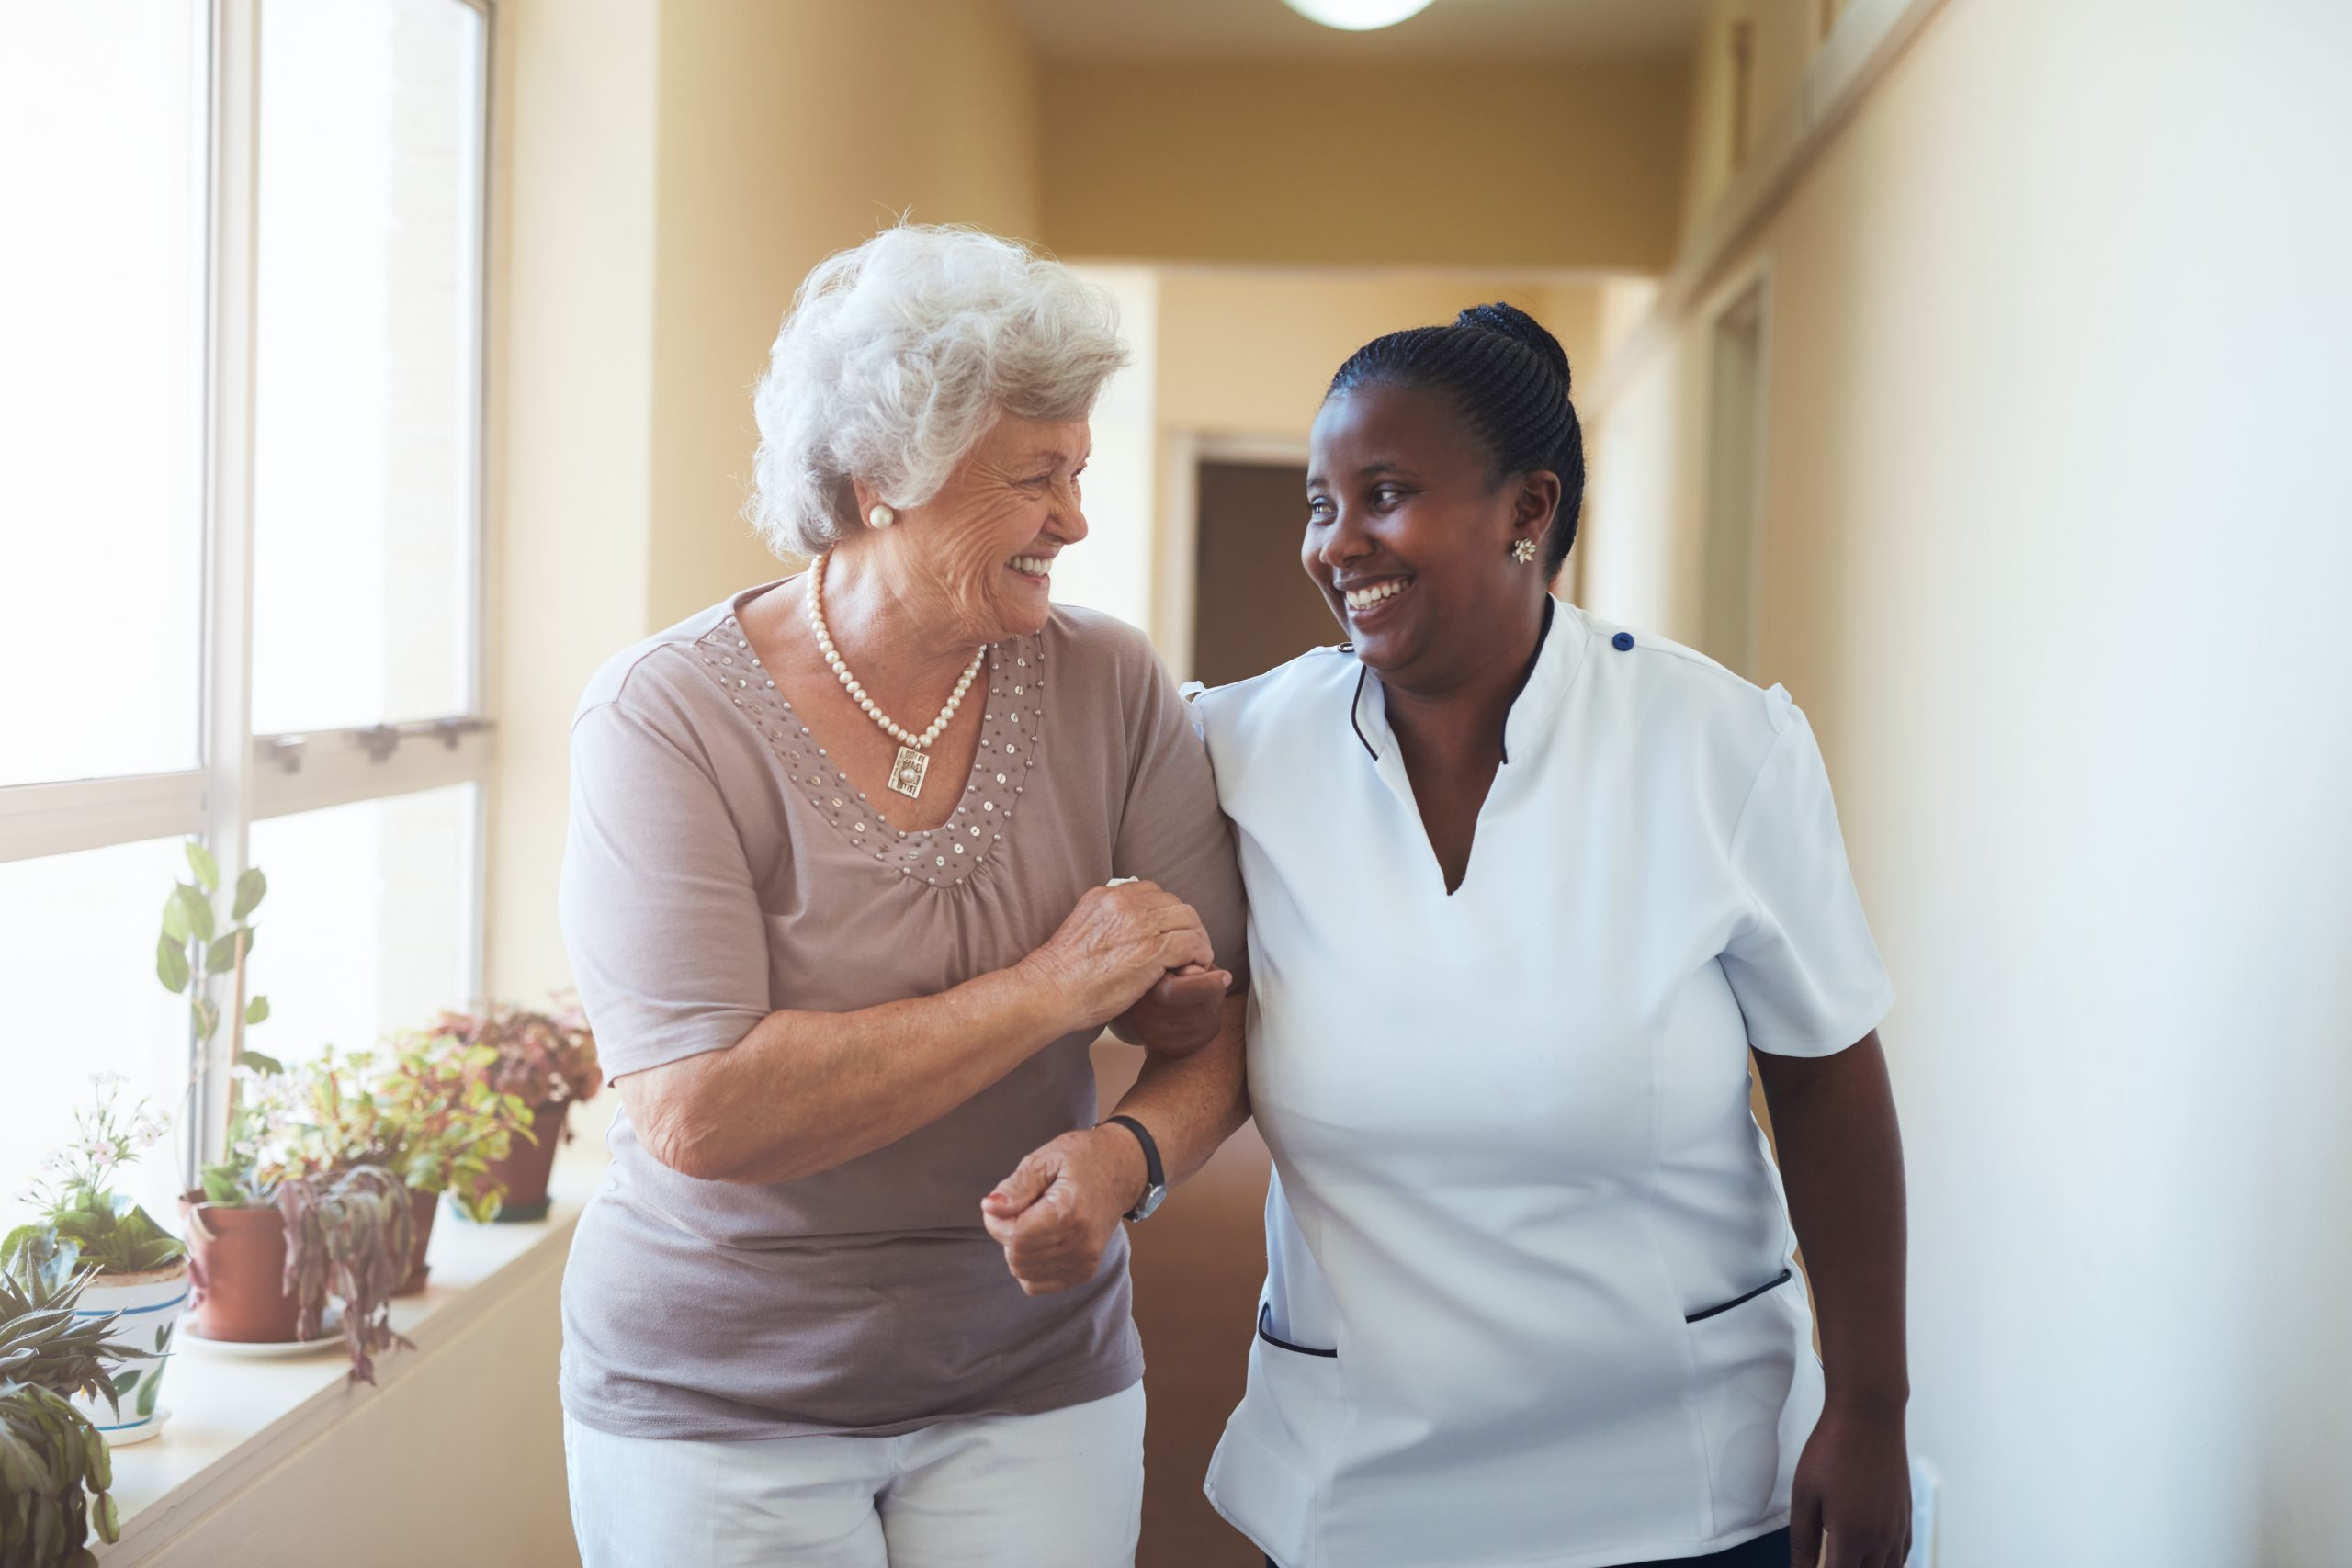 A female cure worker linking arms and smiling with an elderly woman.